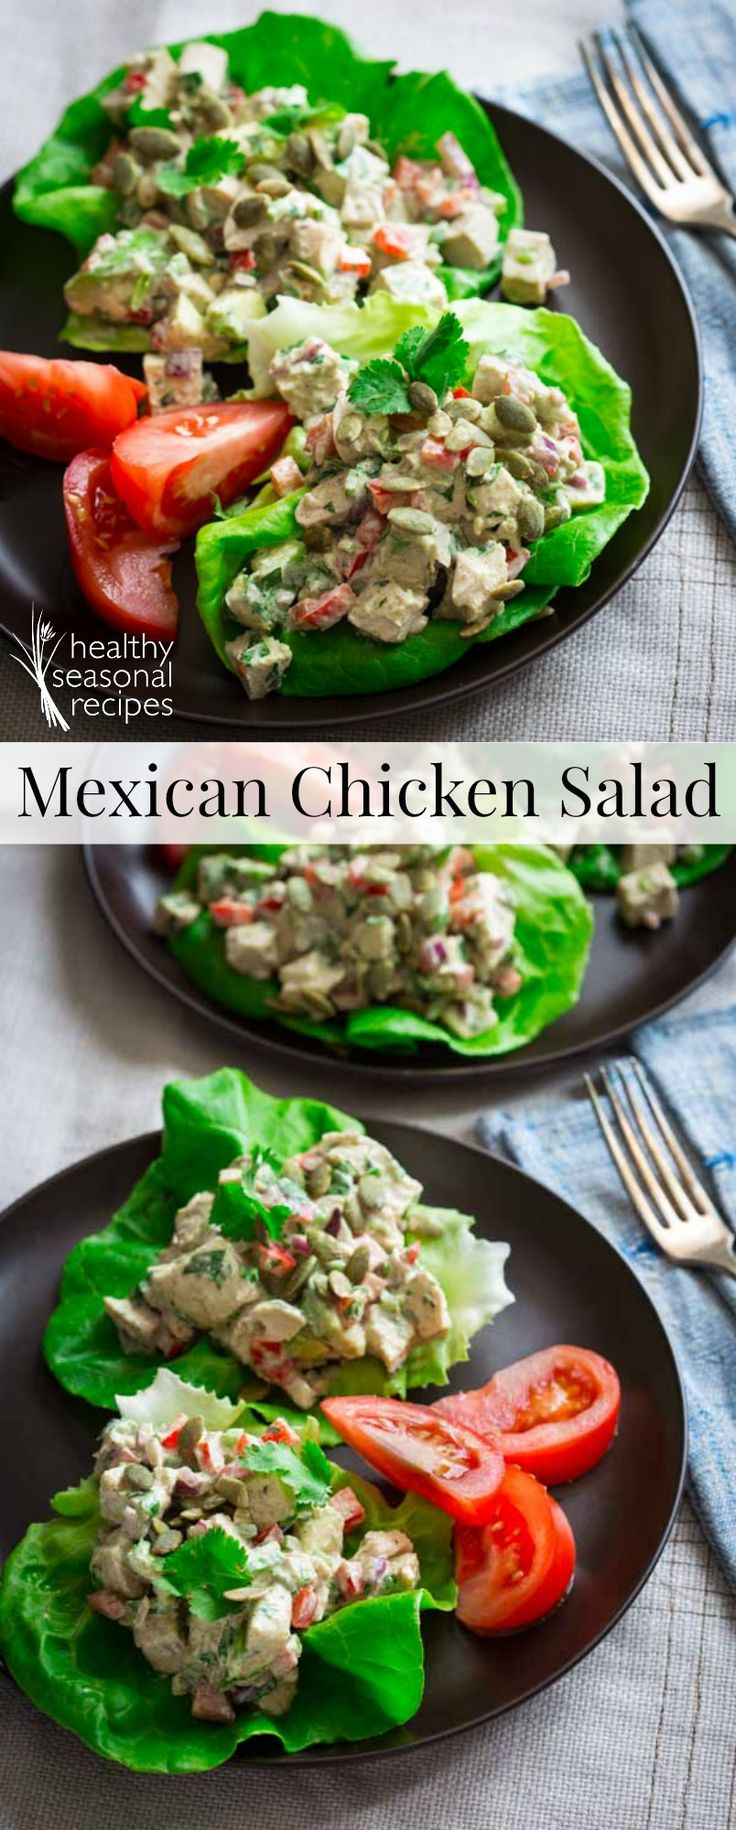 mexican chicken salad lettuce cups - Healthy Seasonal Recipes